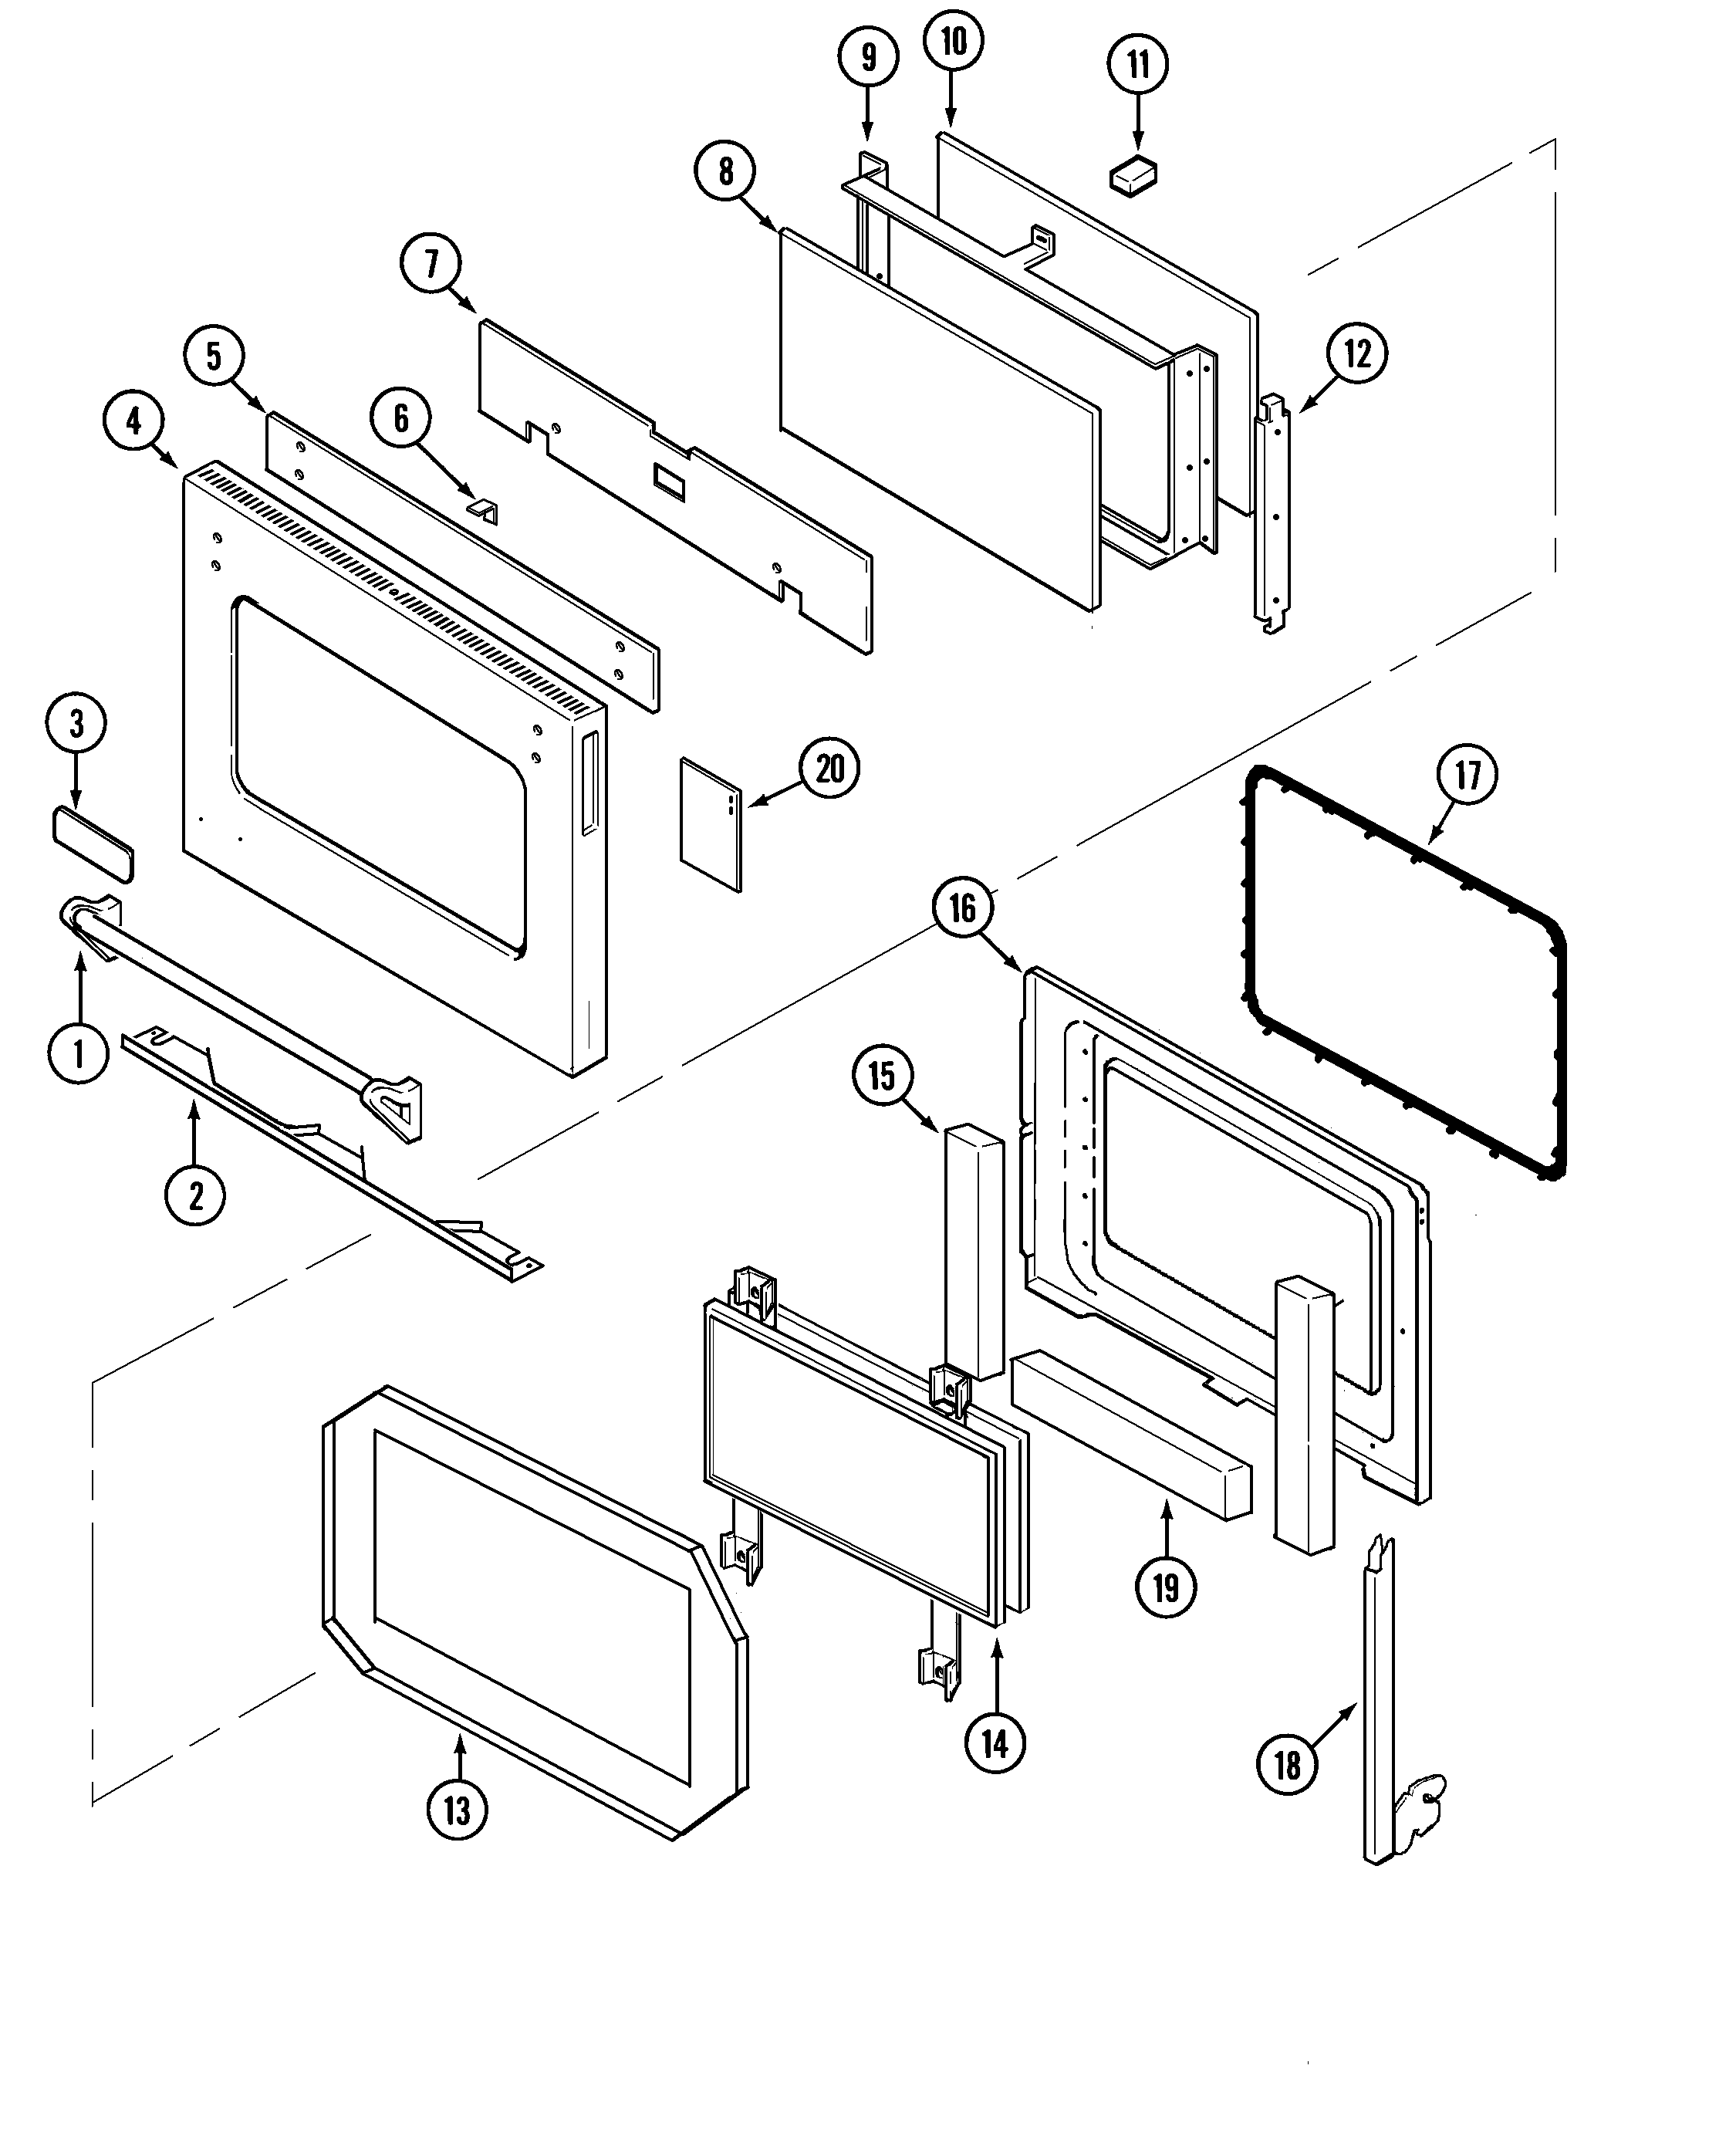 SVD48600P Gas/Electric Slide In Range Door Parts diagram. Wiring  information Parts diagram